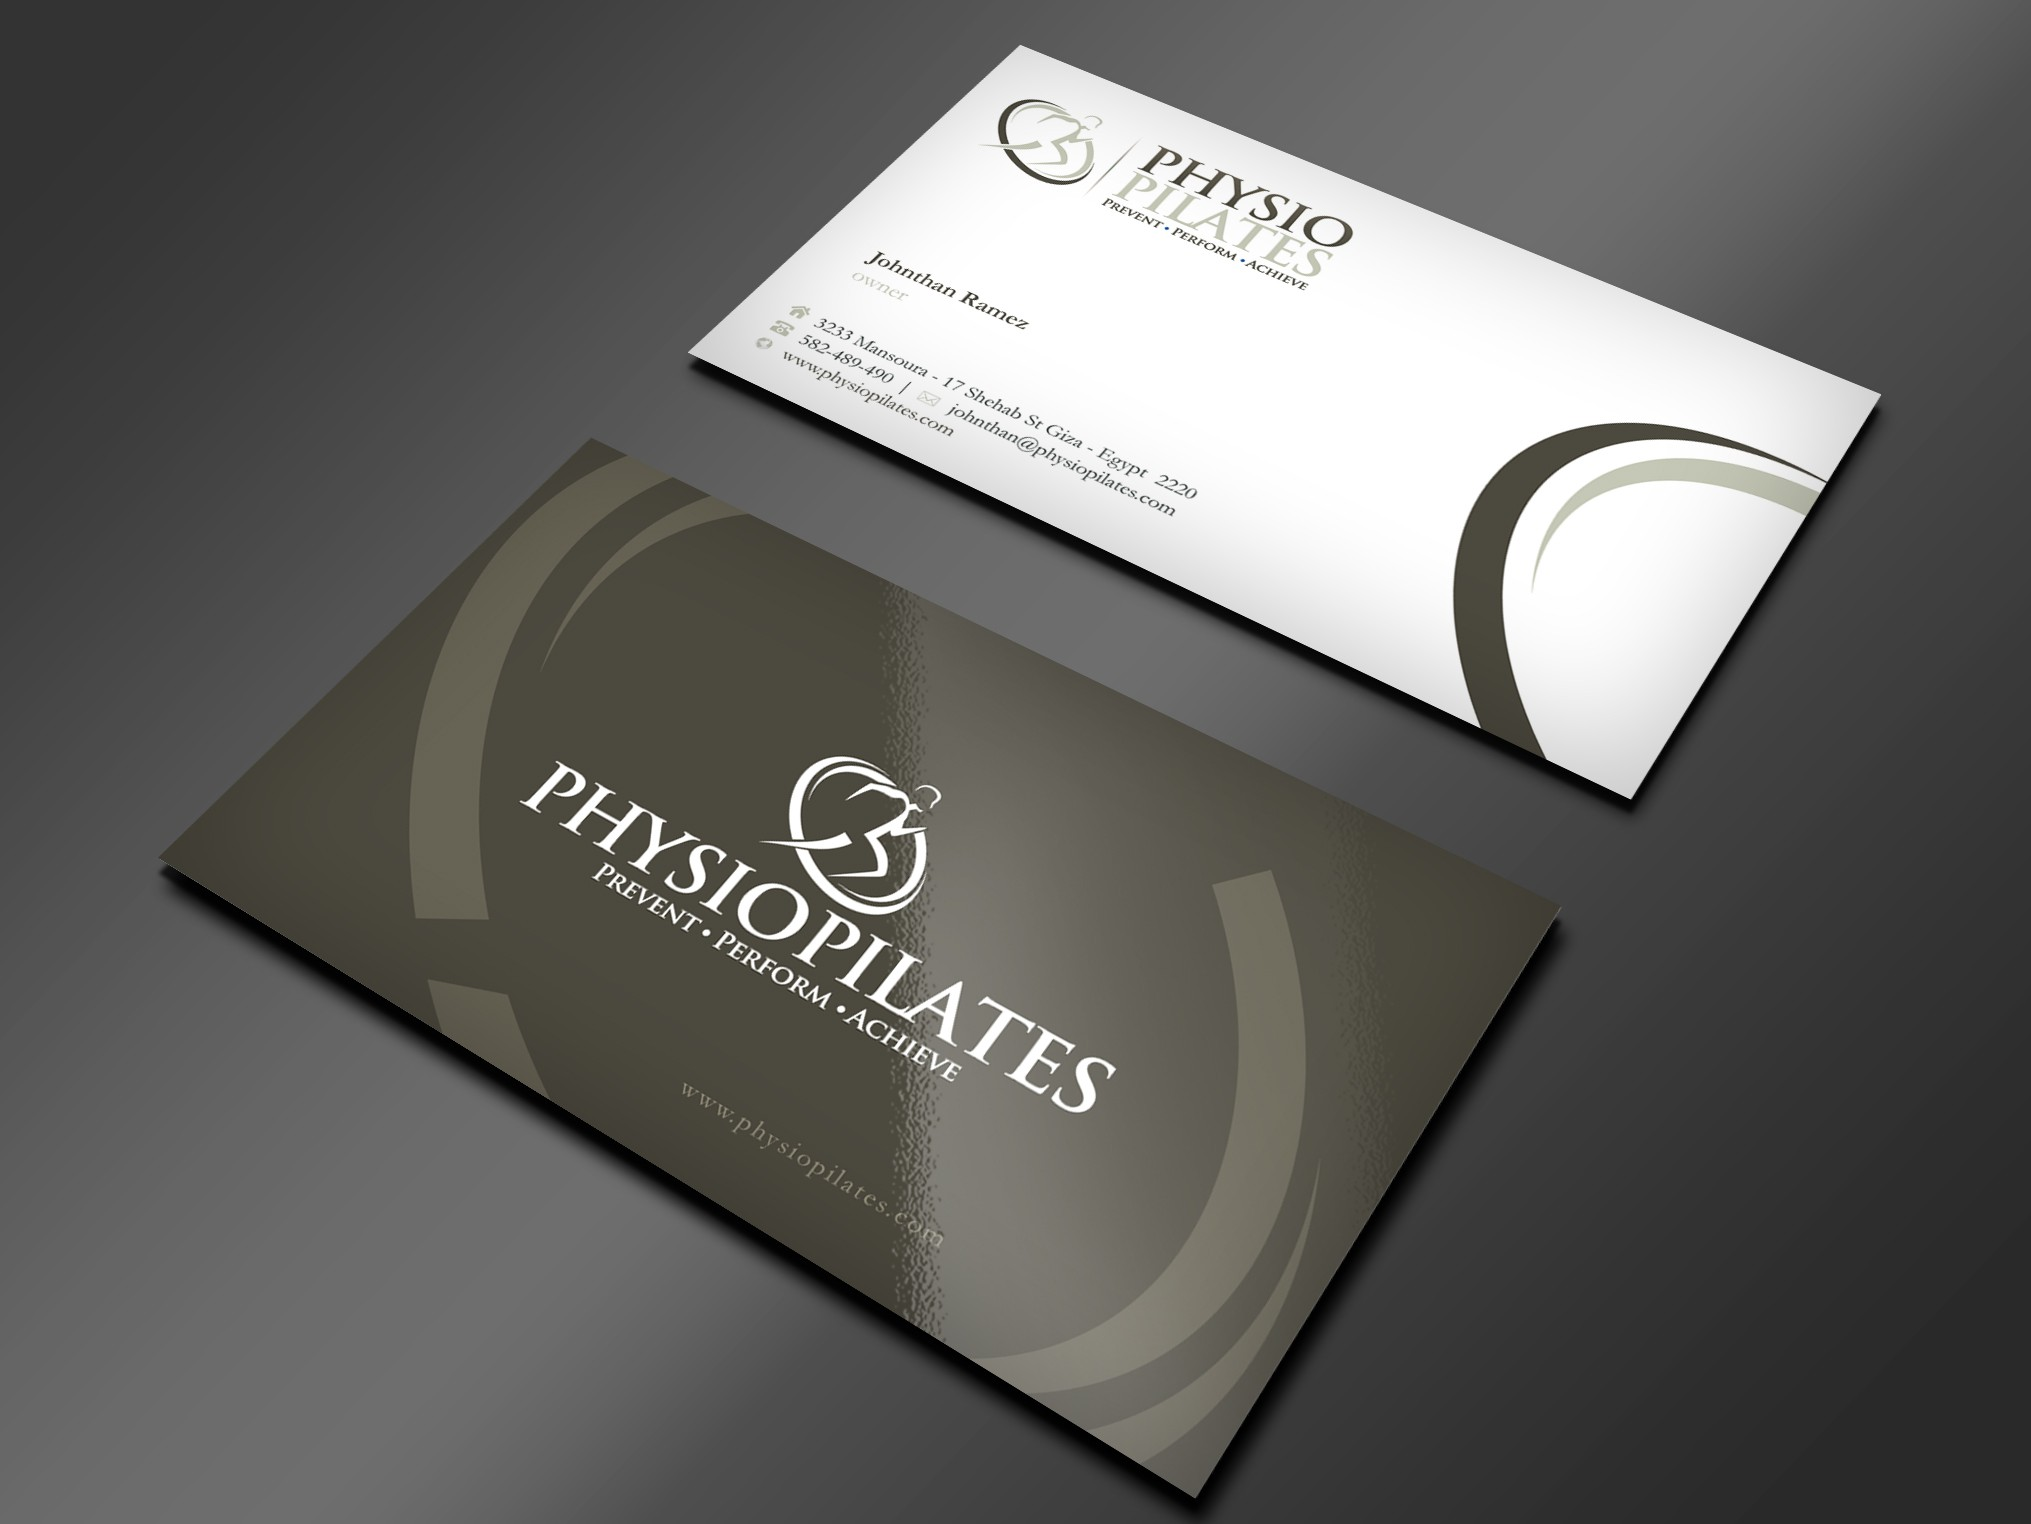 Physio Pilates needs a stationery design